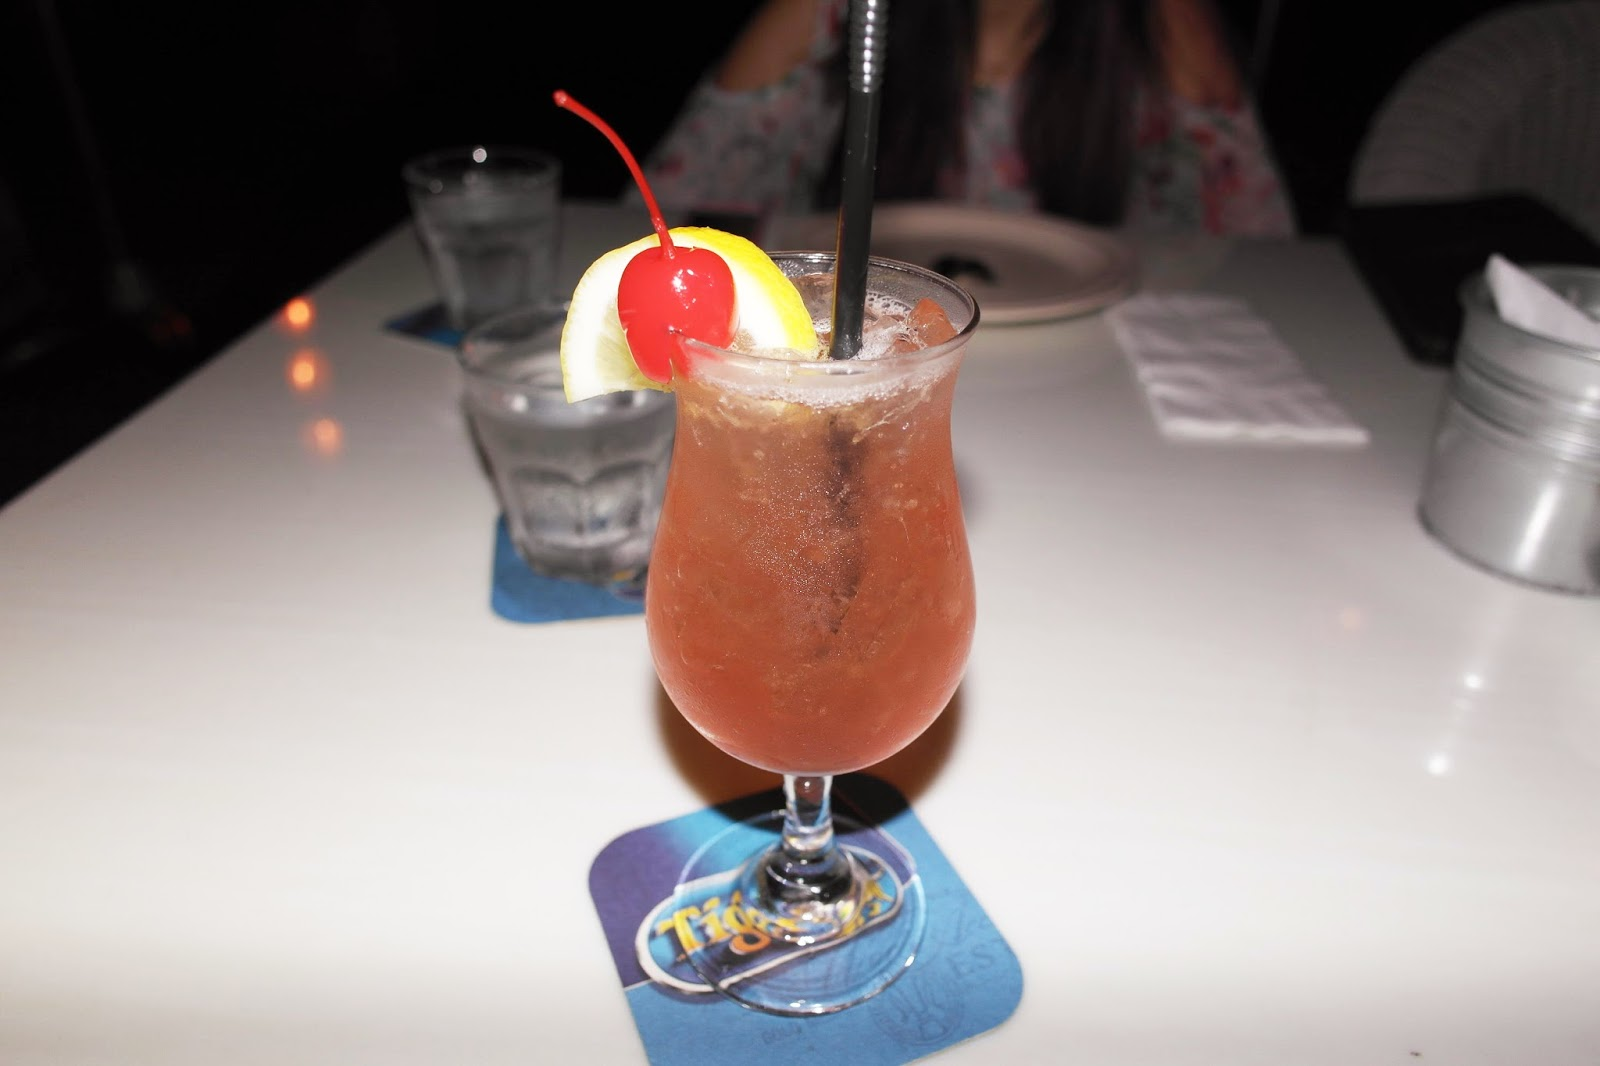 polo ralph lauren shoes singapore sling drink image